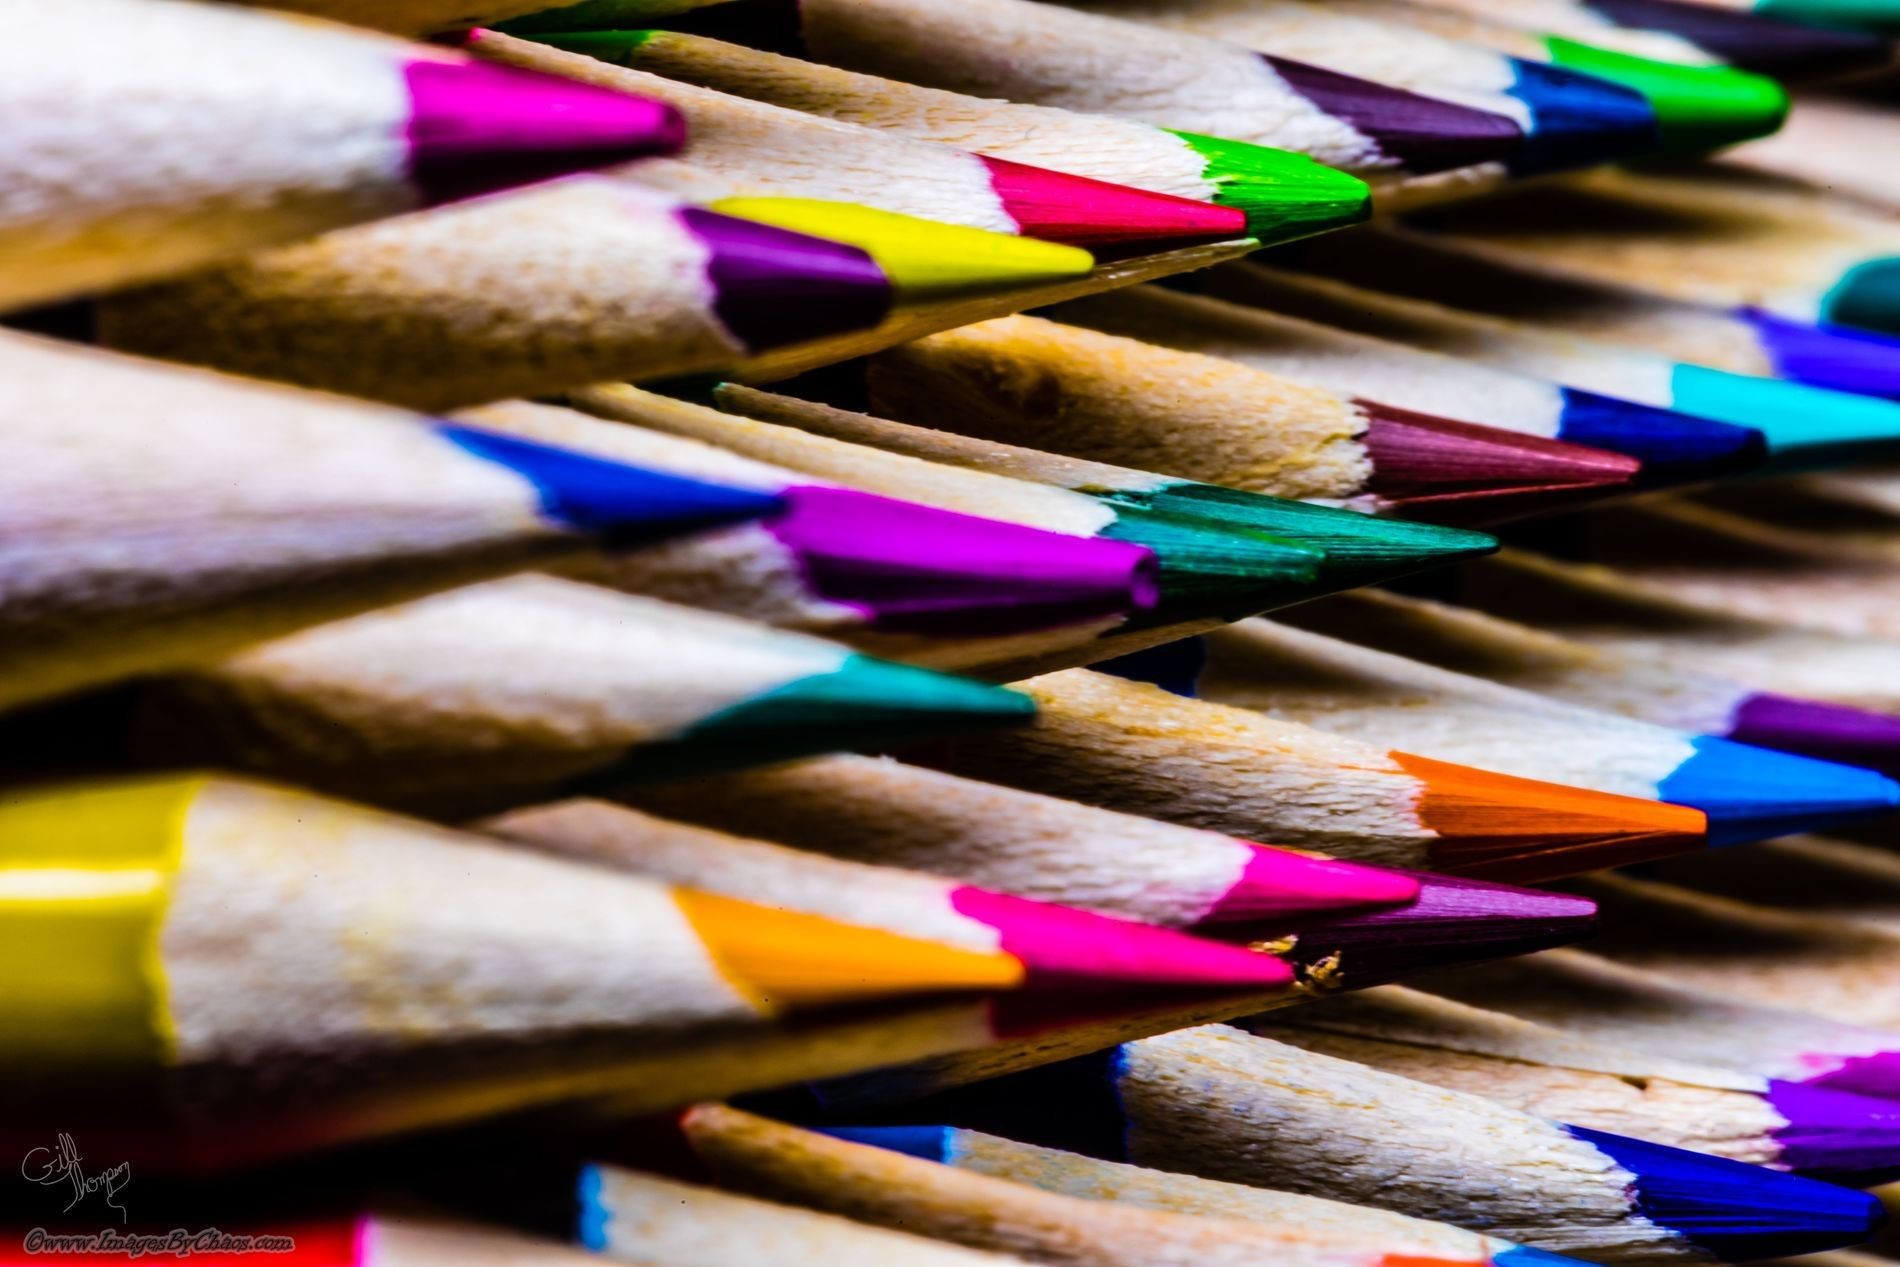 Creative leave-carpet with colored pencils